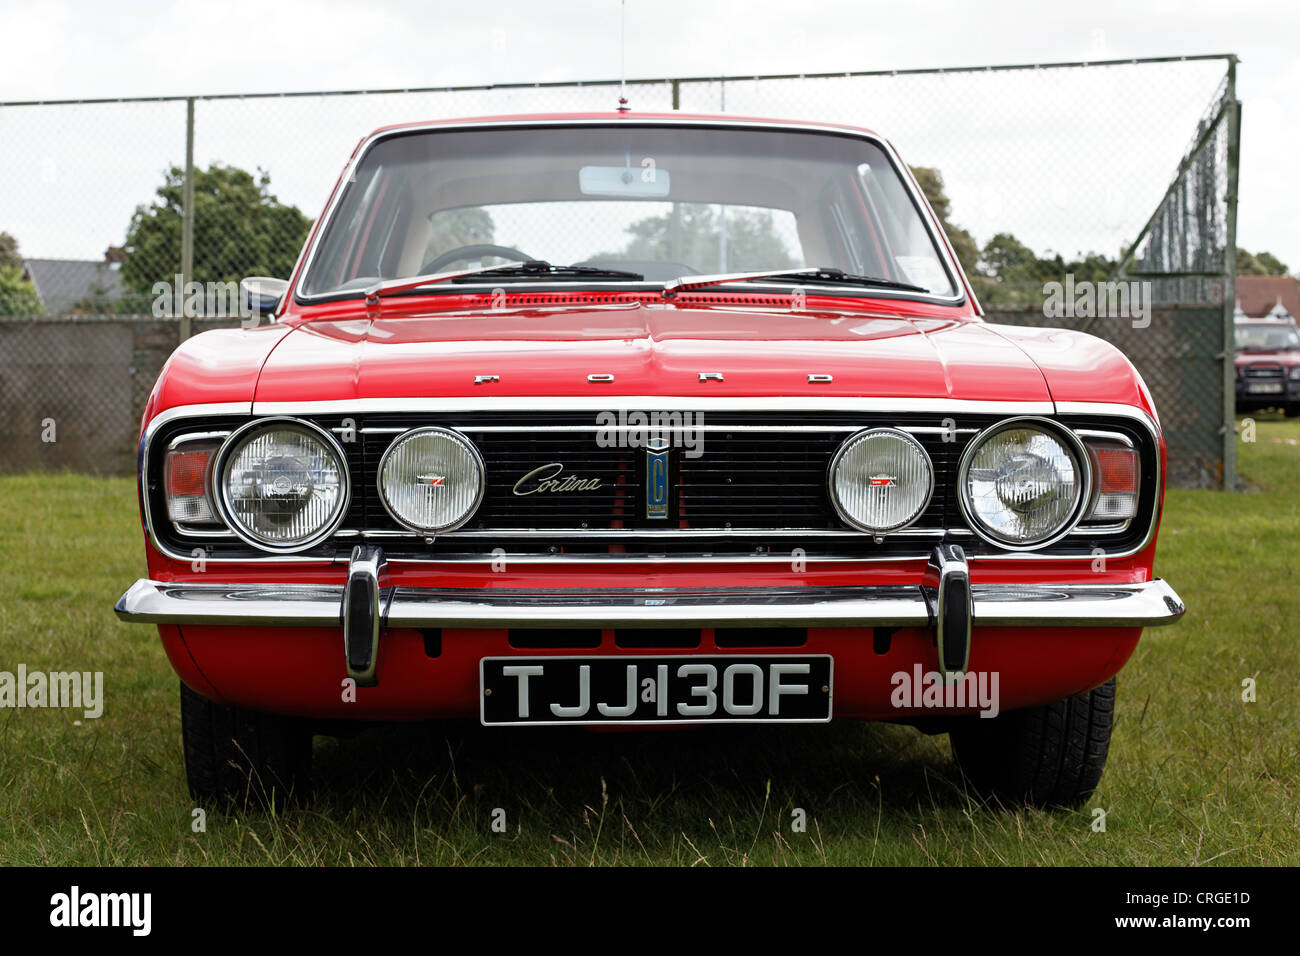 A British Ford Cortina GT dating from about 1968. Stock Photo